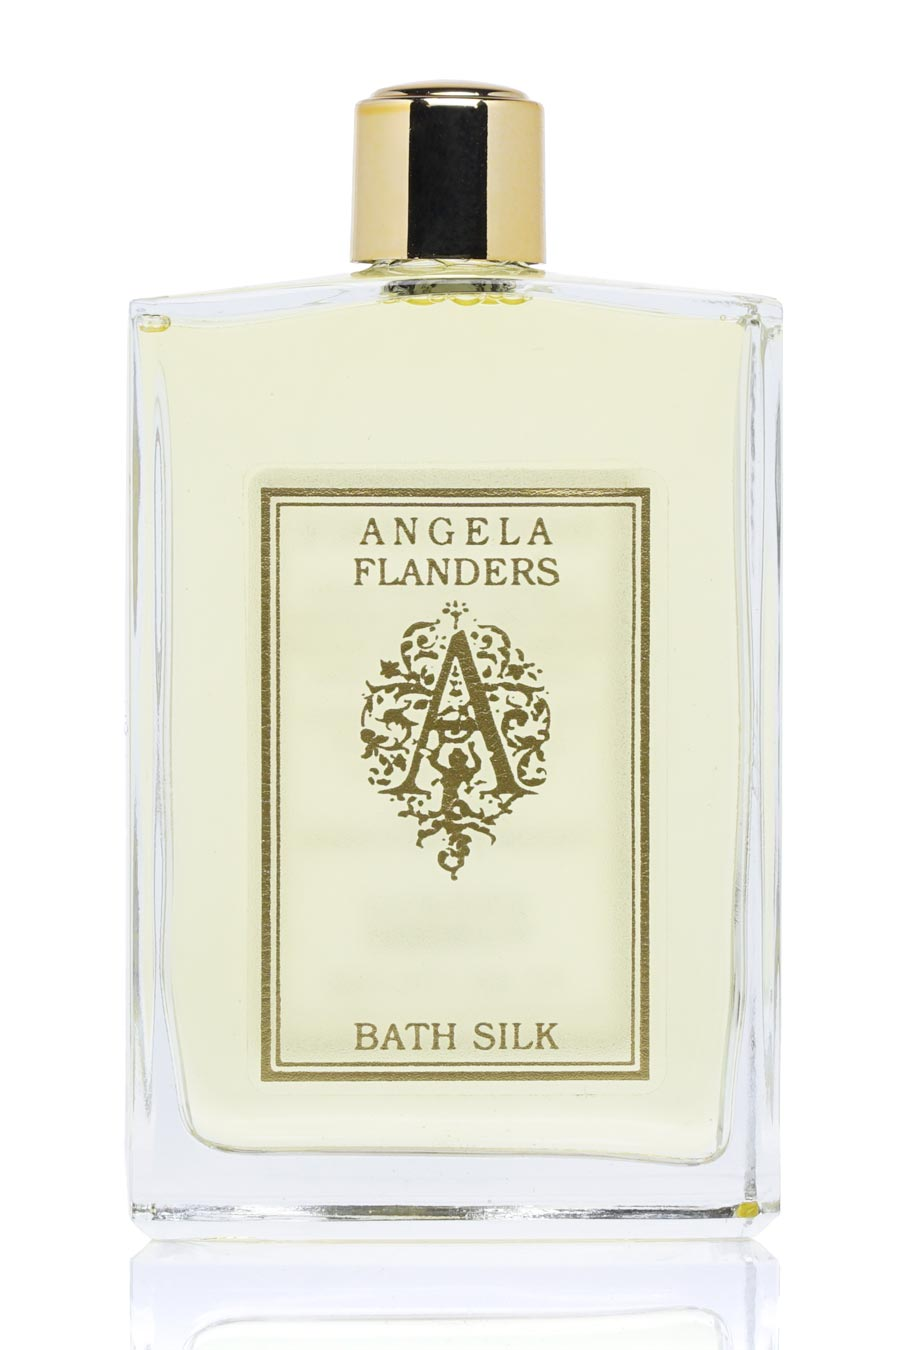 Angela Flanders White Flowers Bath Silk 100ml